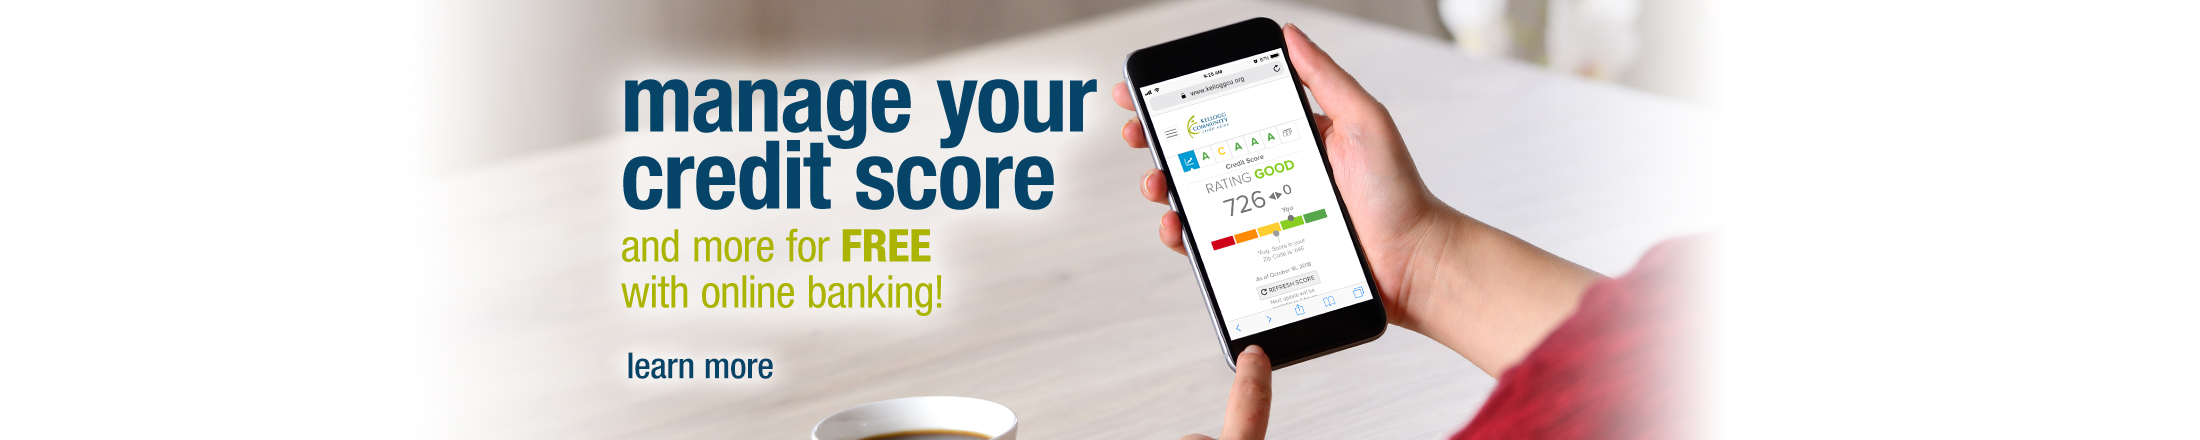 SavvyMoney Credit Score - Free Credit Reporting and Monitoring